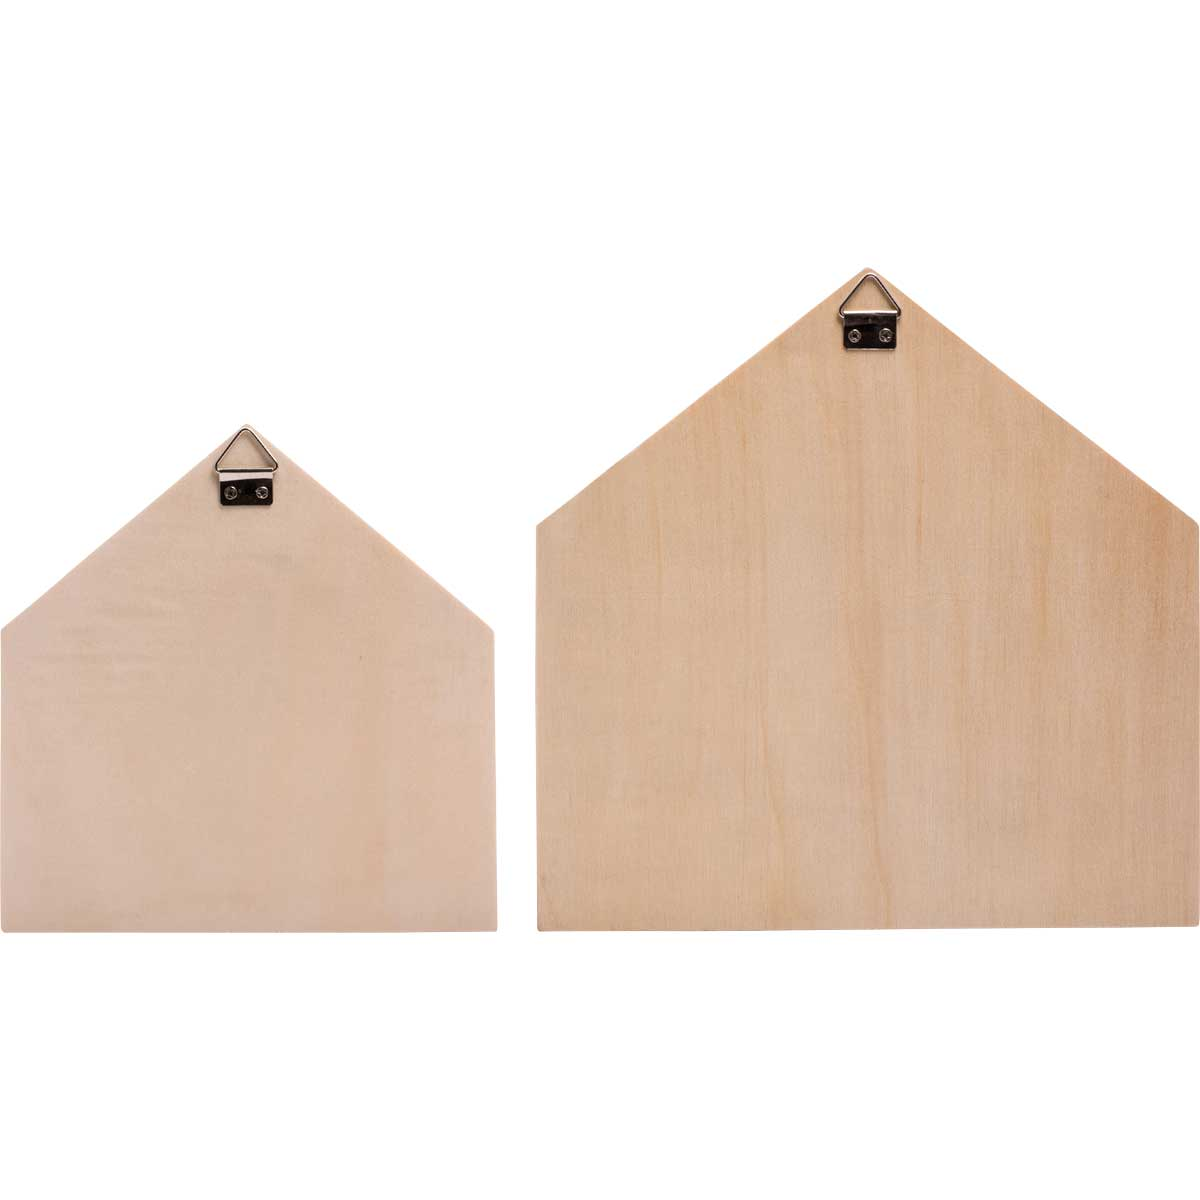 Plaid ® Wood Surfaces - Shadowbox Houses, 2 pc. - 29507E